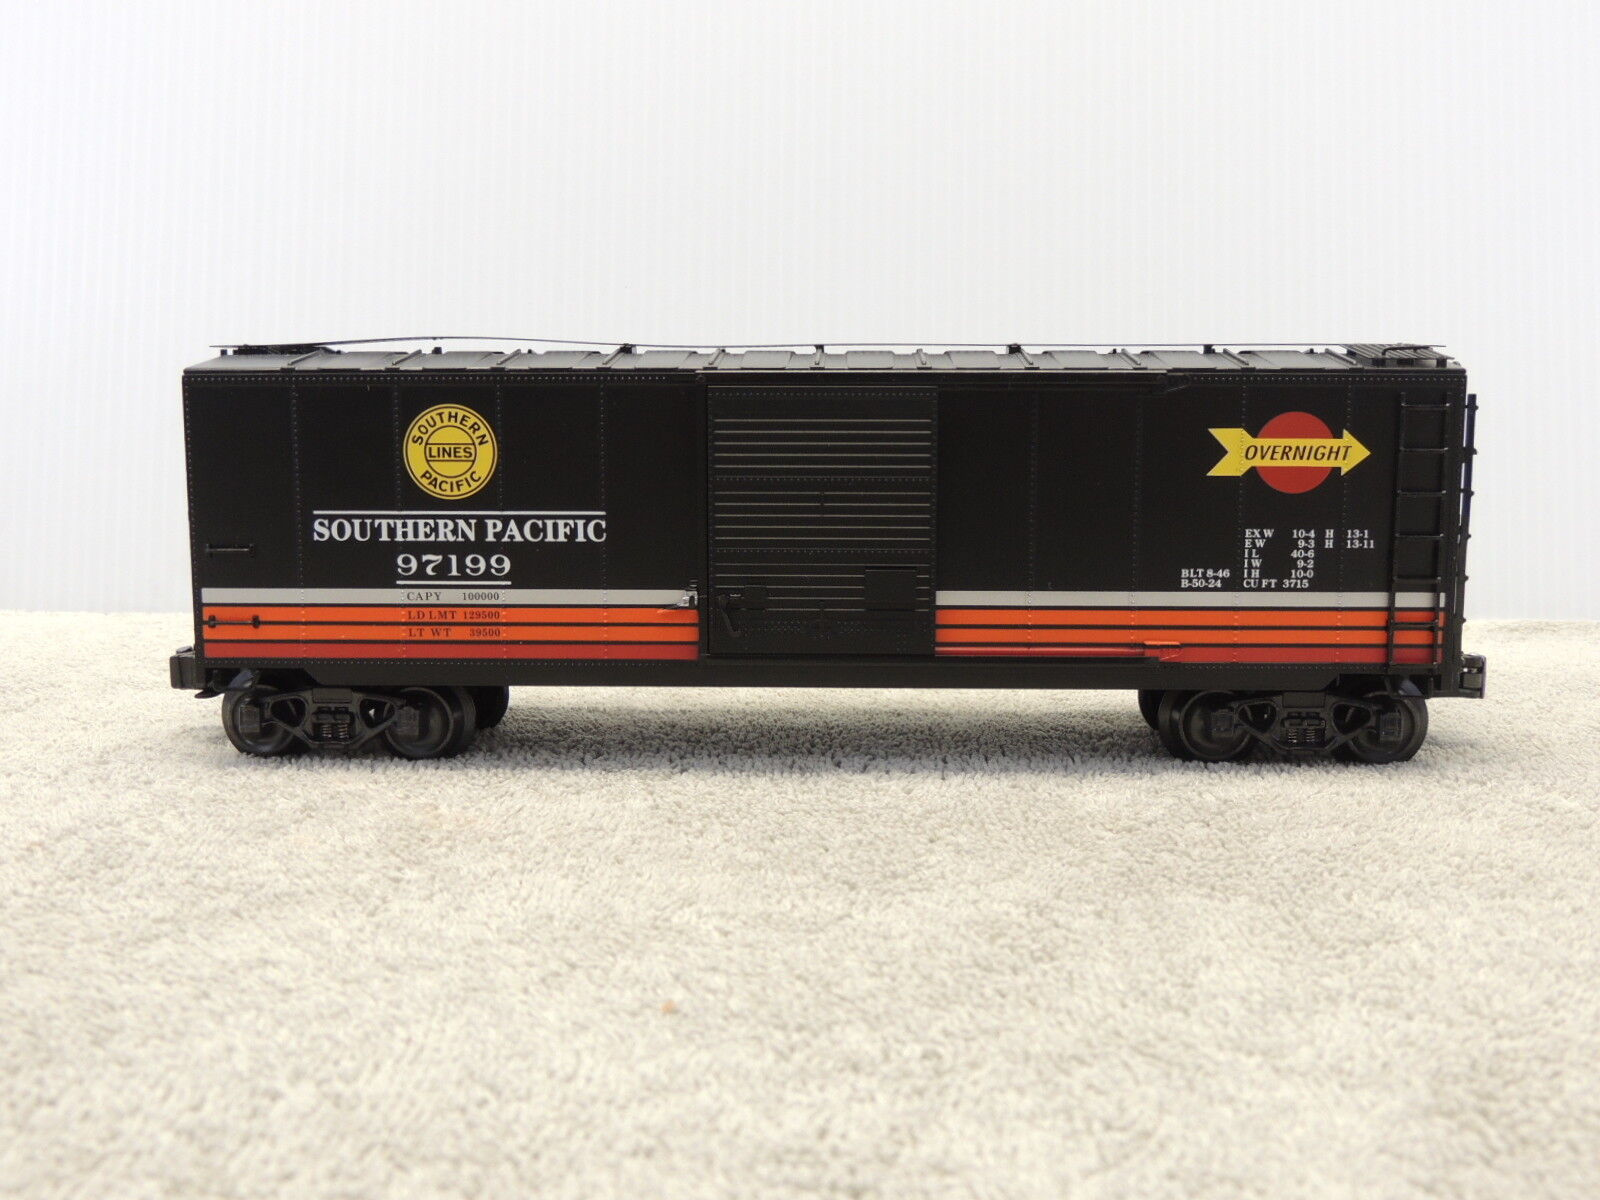 K-Line K761-20343 Southern Pacific Overnight Boxcar